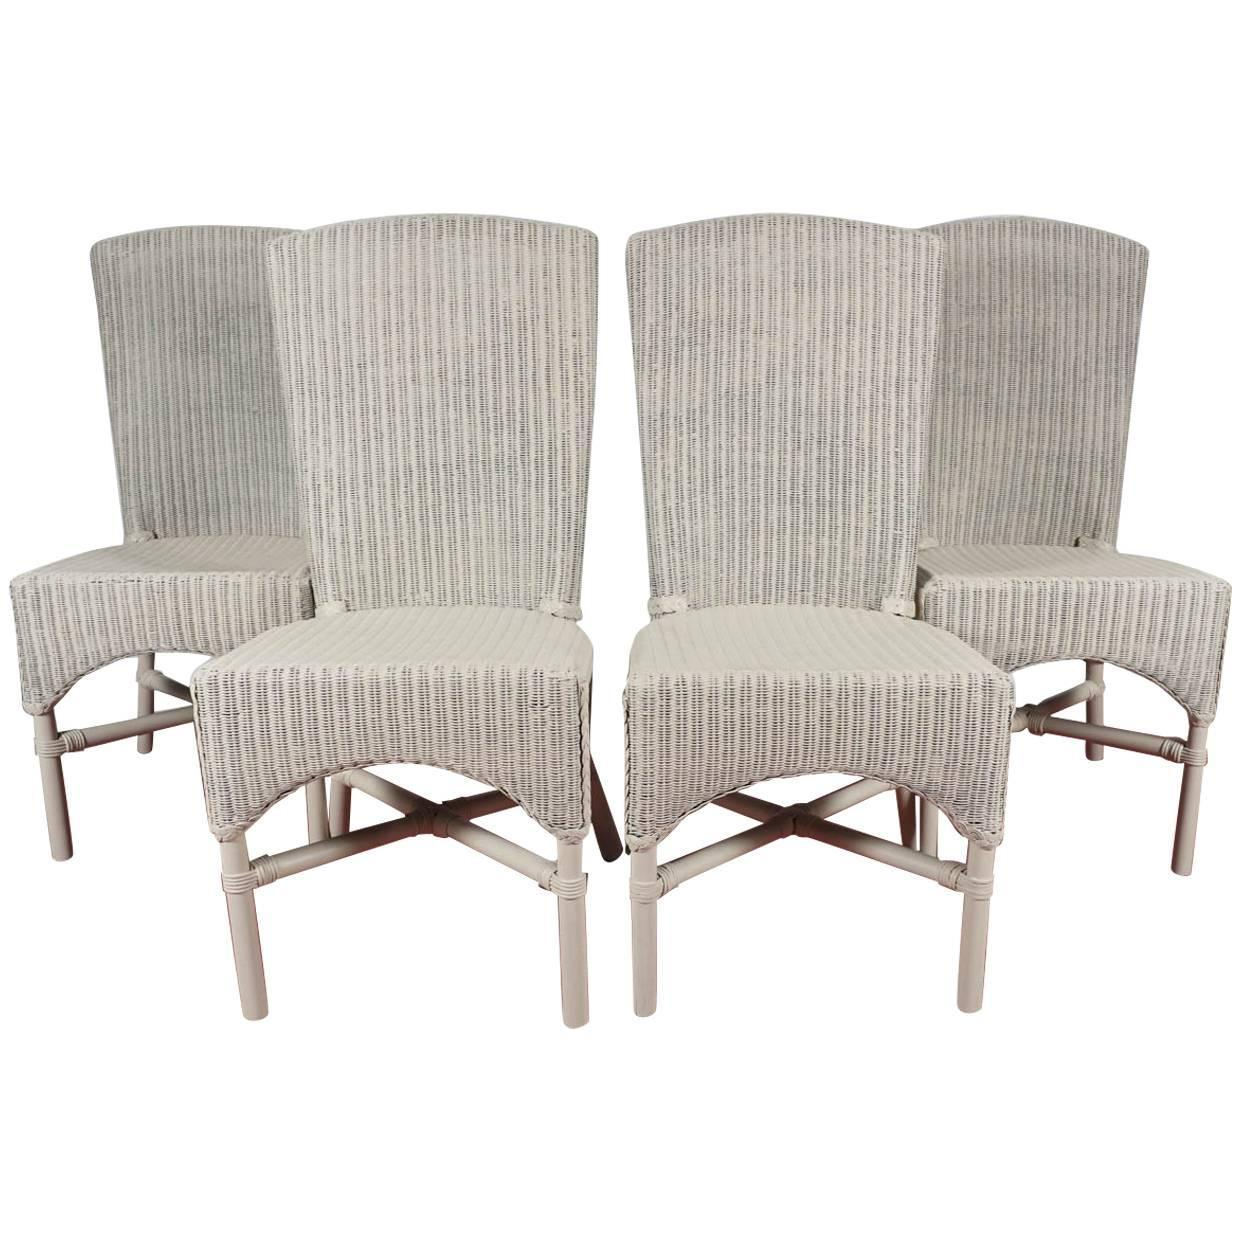 Six Vintage Lloyd Loom Wicker Dining Chairs For Sale At 1stdibs